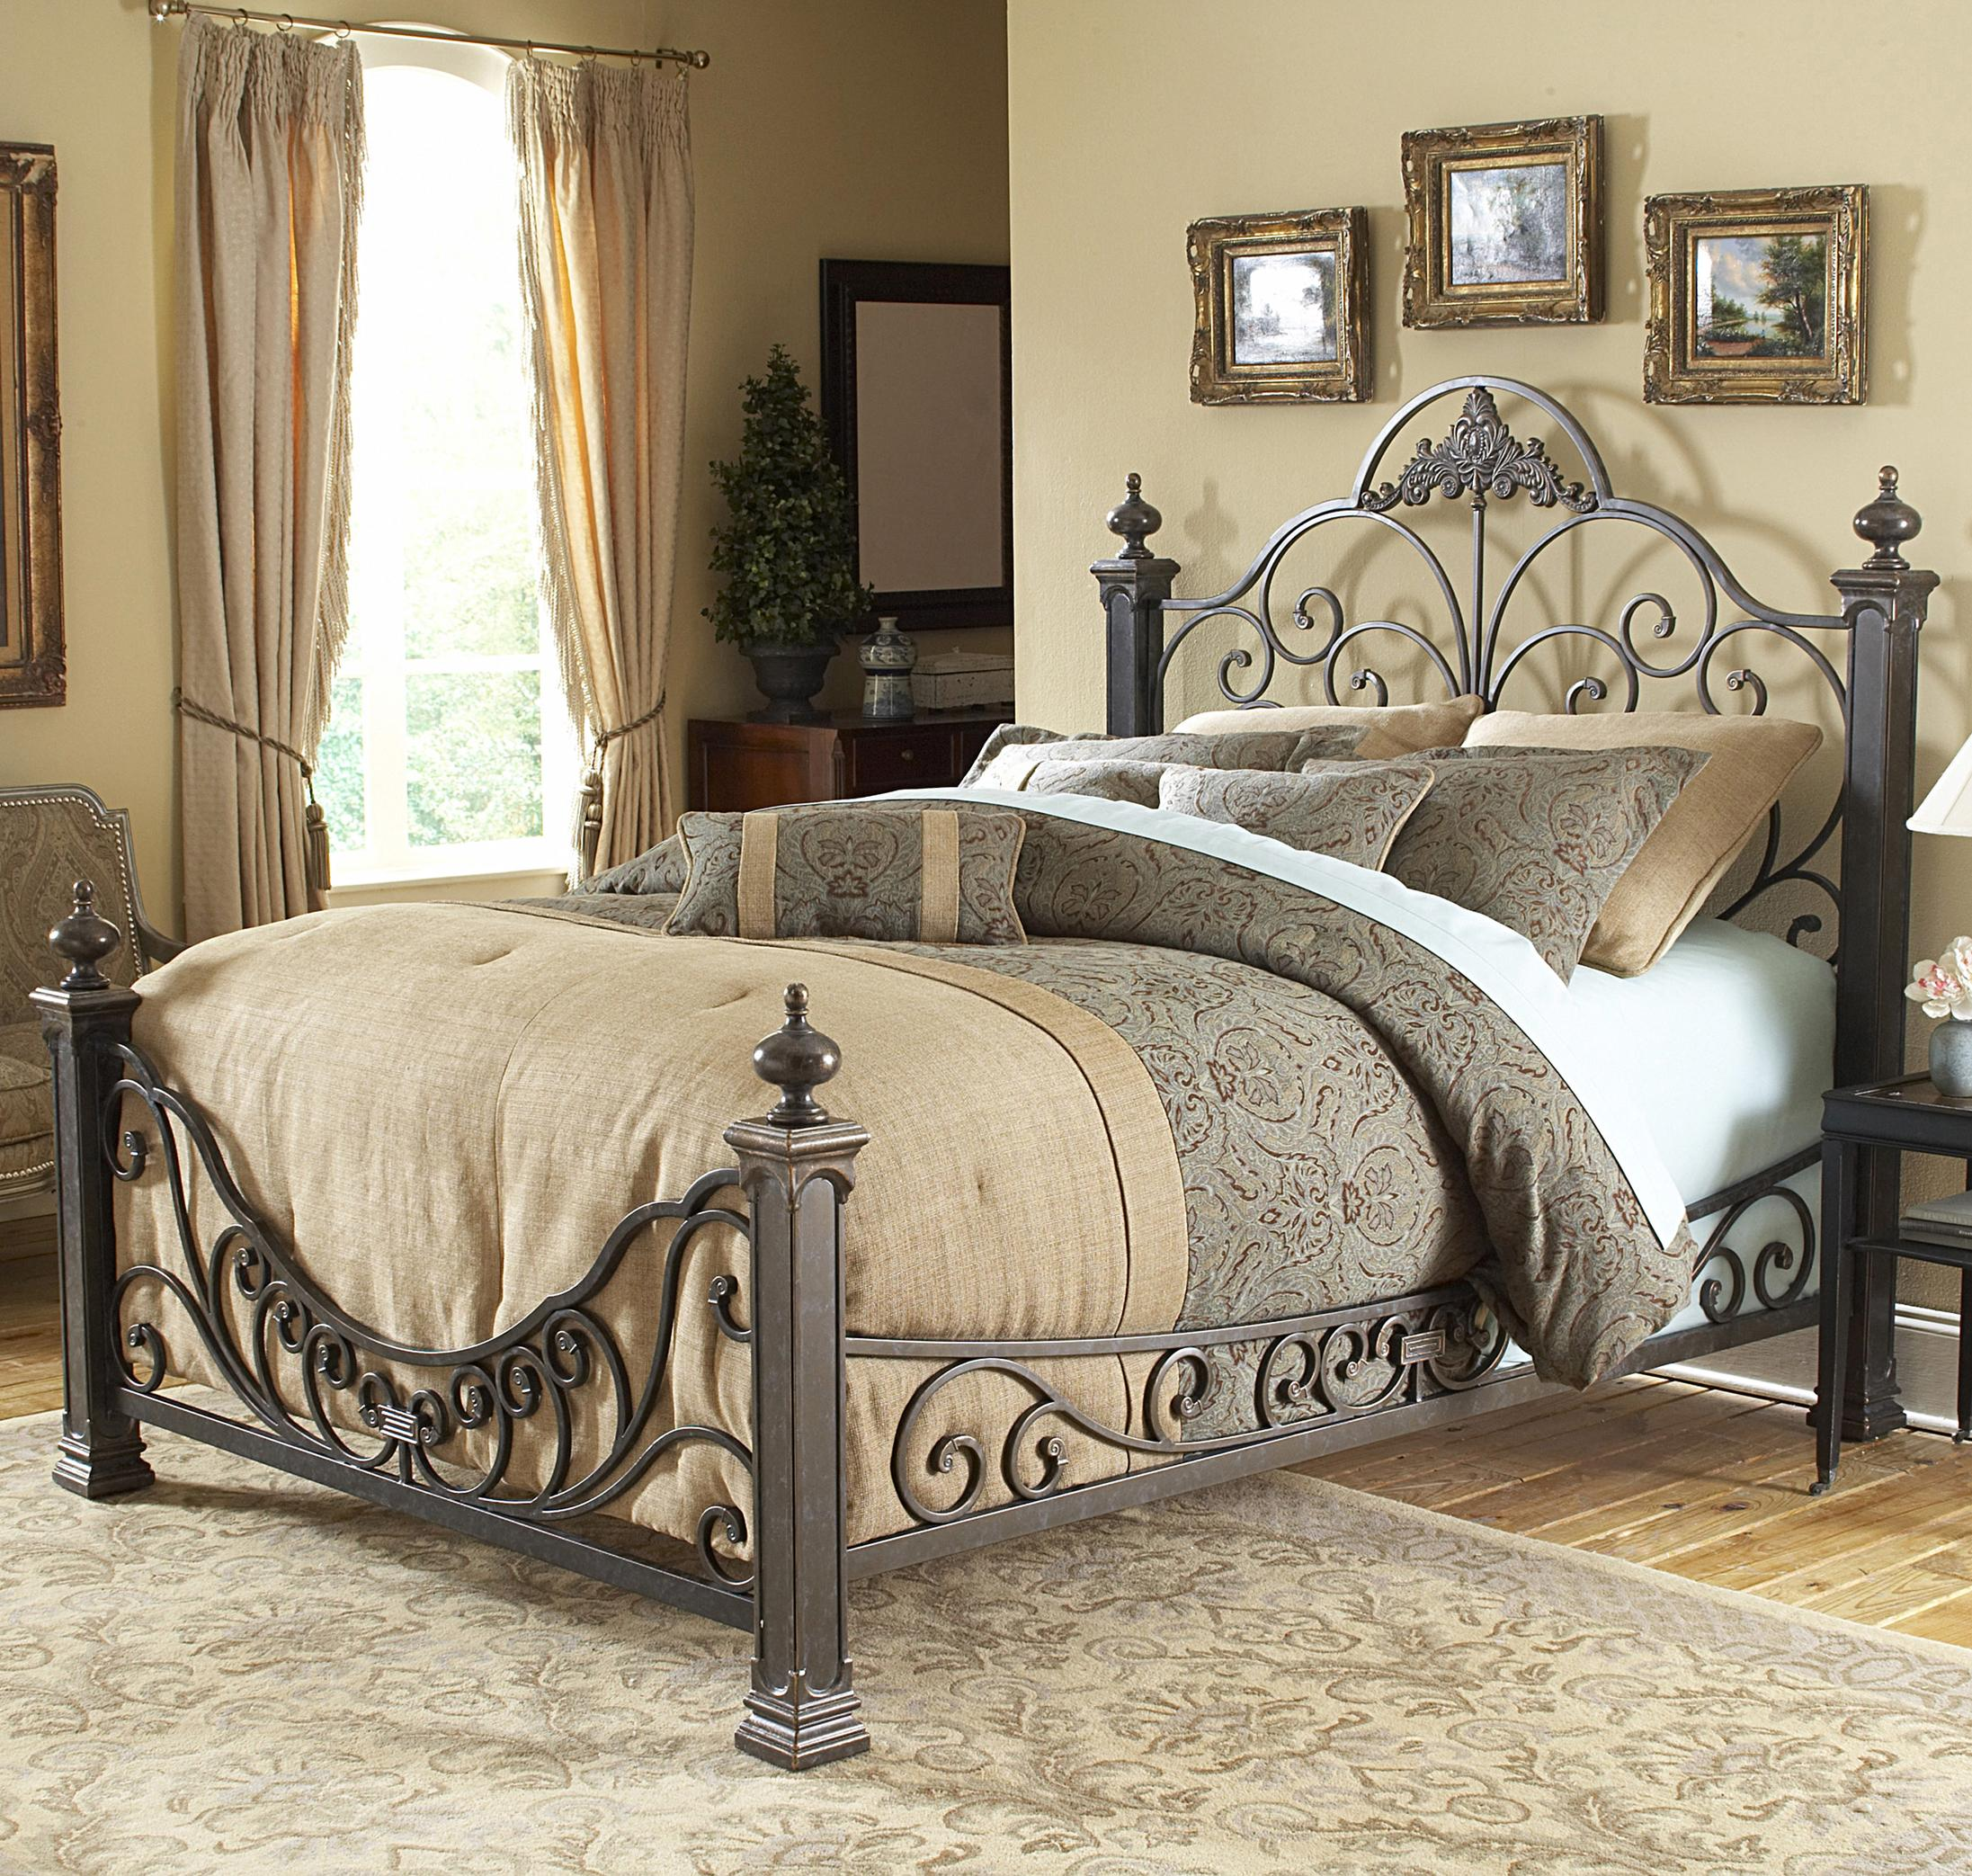 Fashion Bed Group Metal Beds California King Baroque